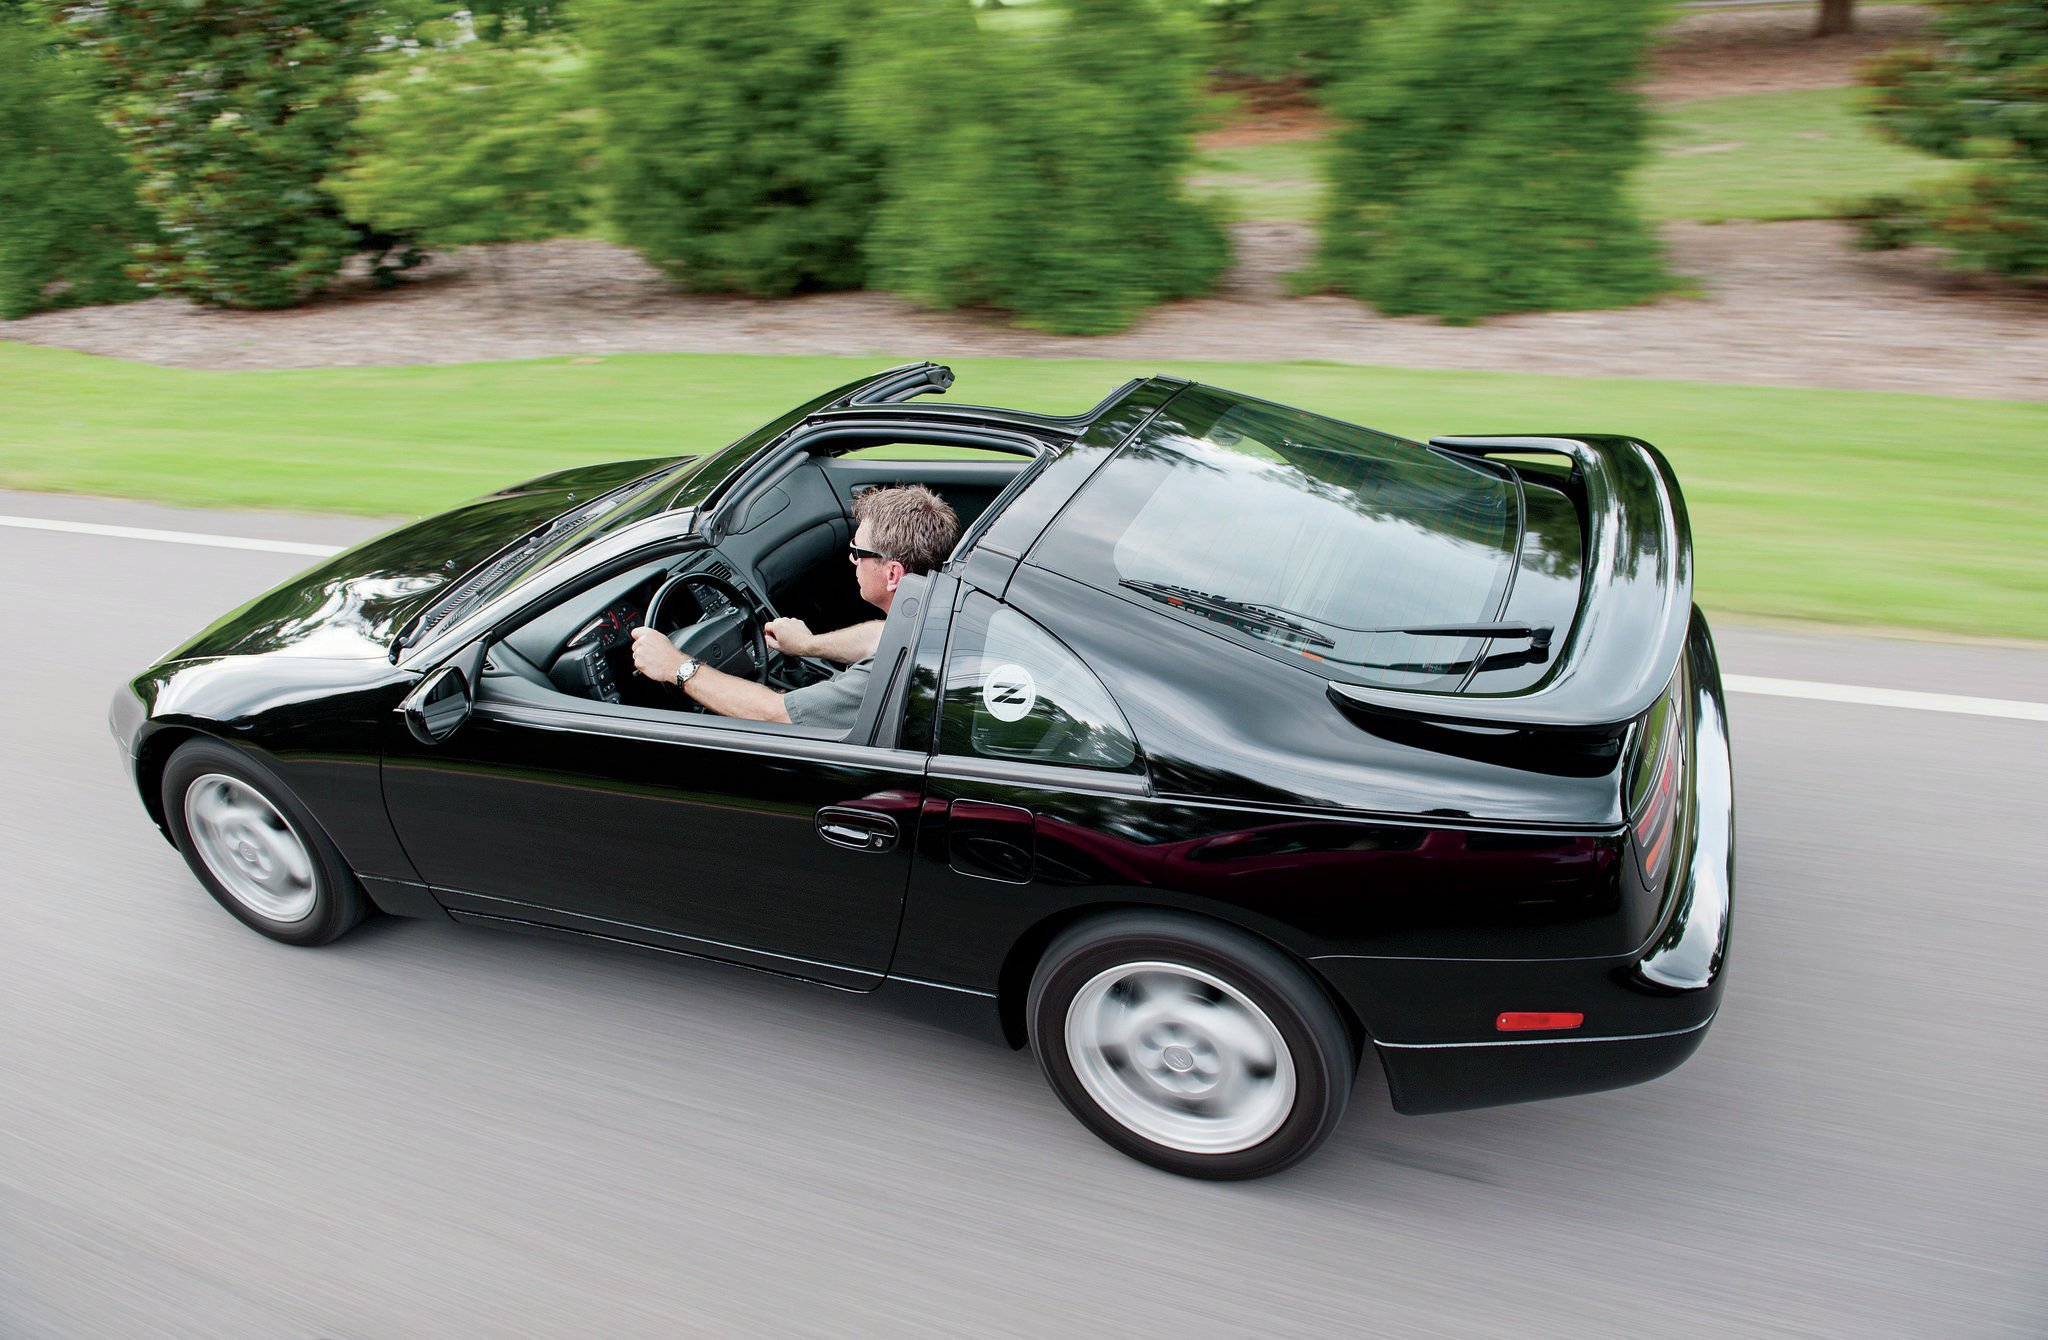 Still stylin': Yeah, it's got T-tops, but the 300ZX is no throwback. It's as fast and fun as any modern sports car.